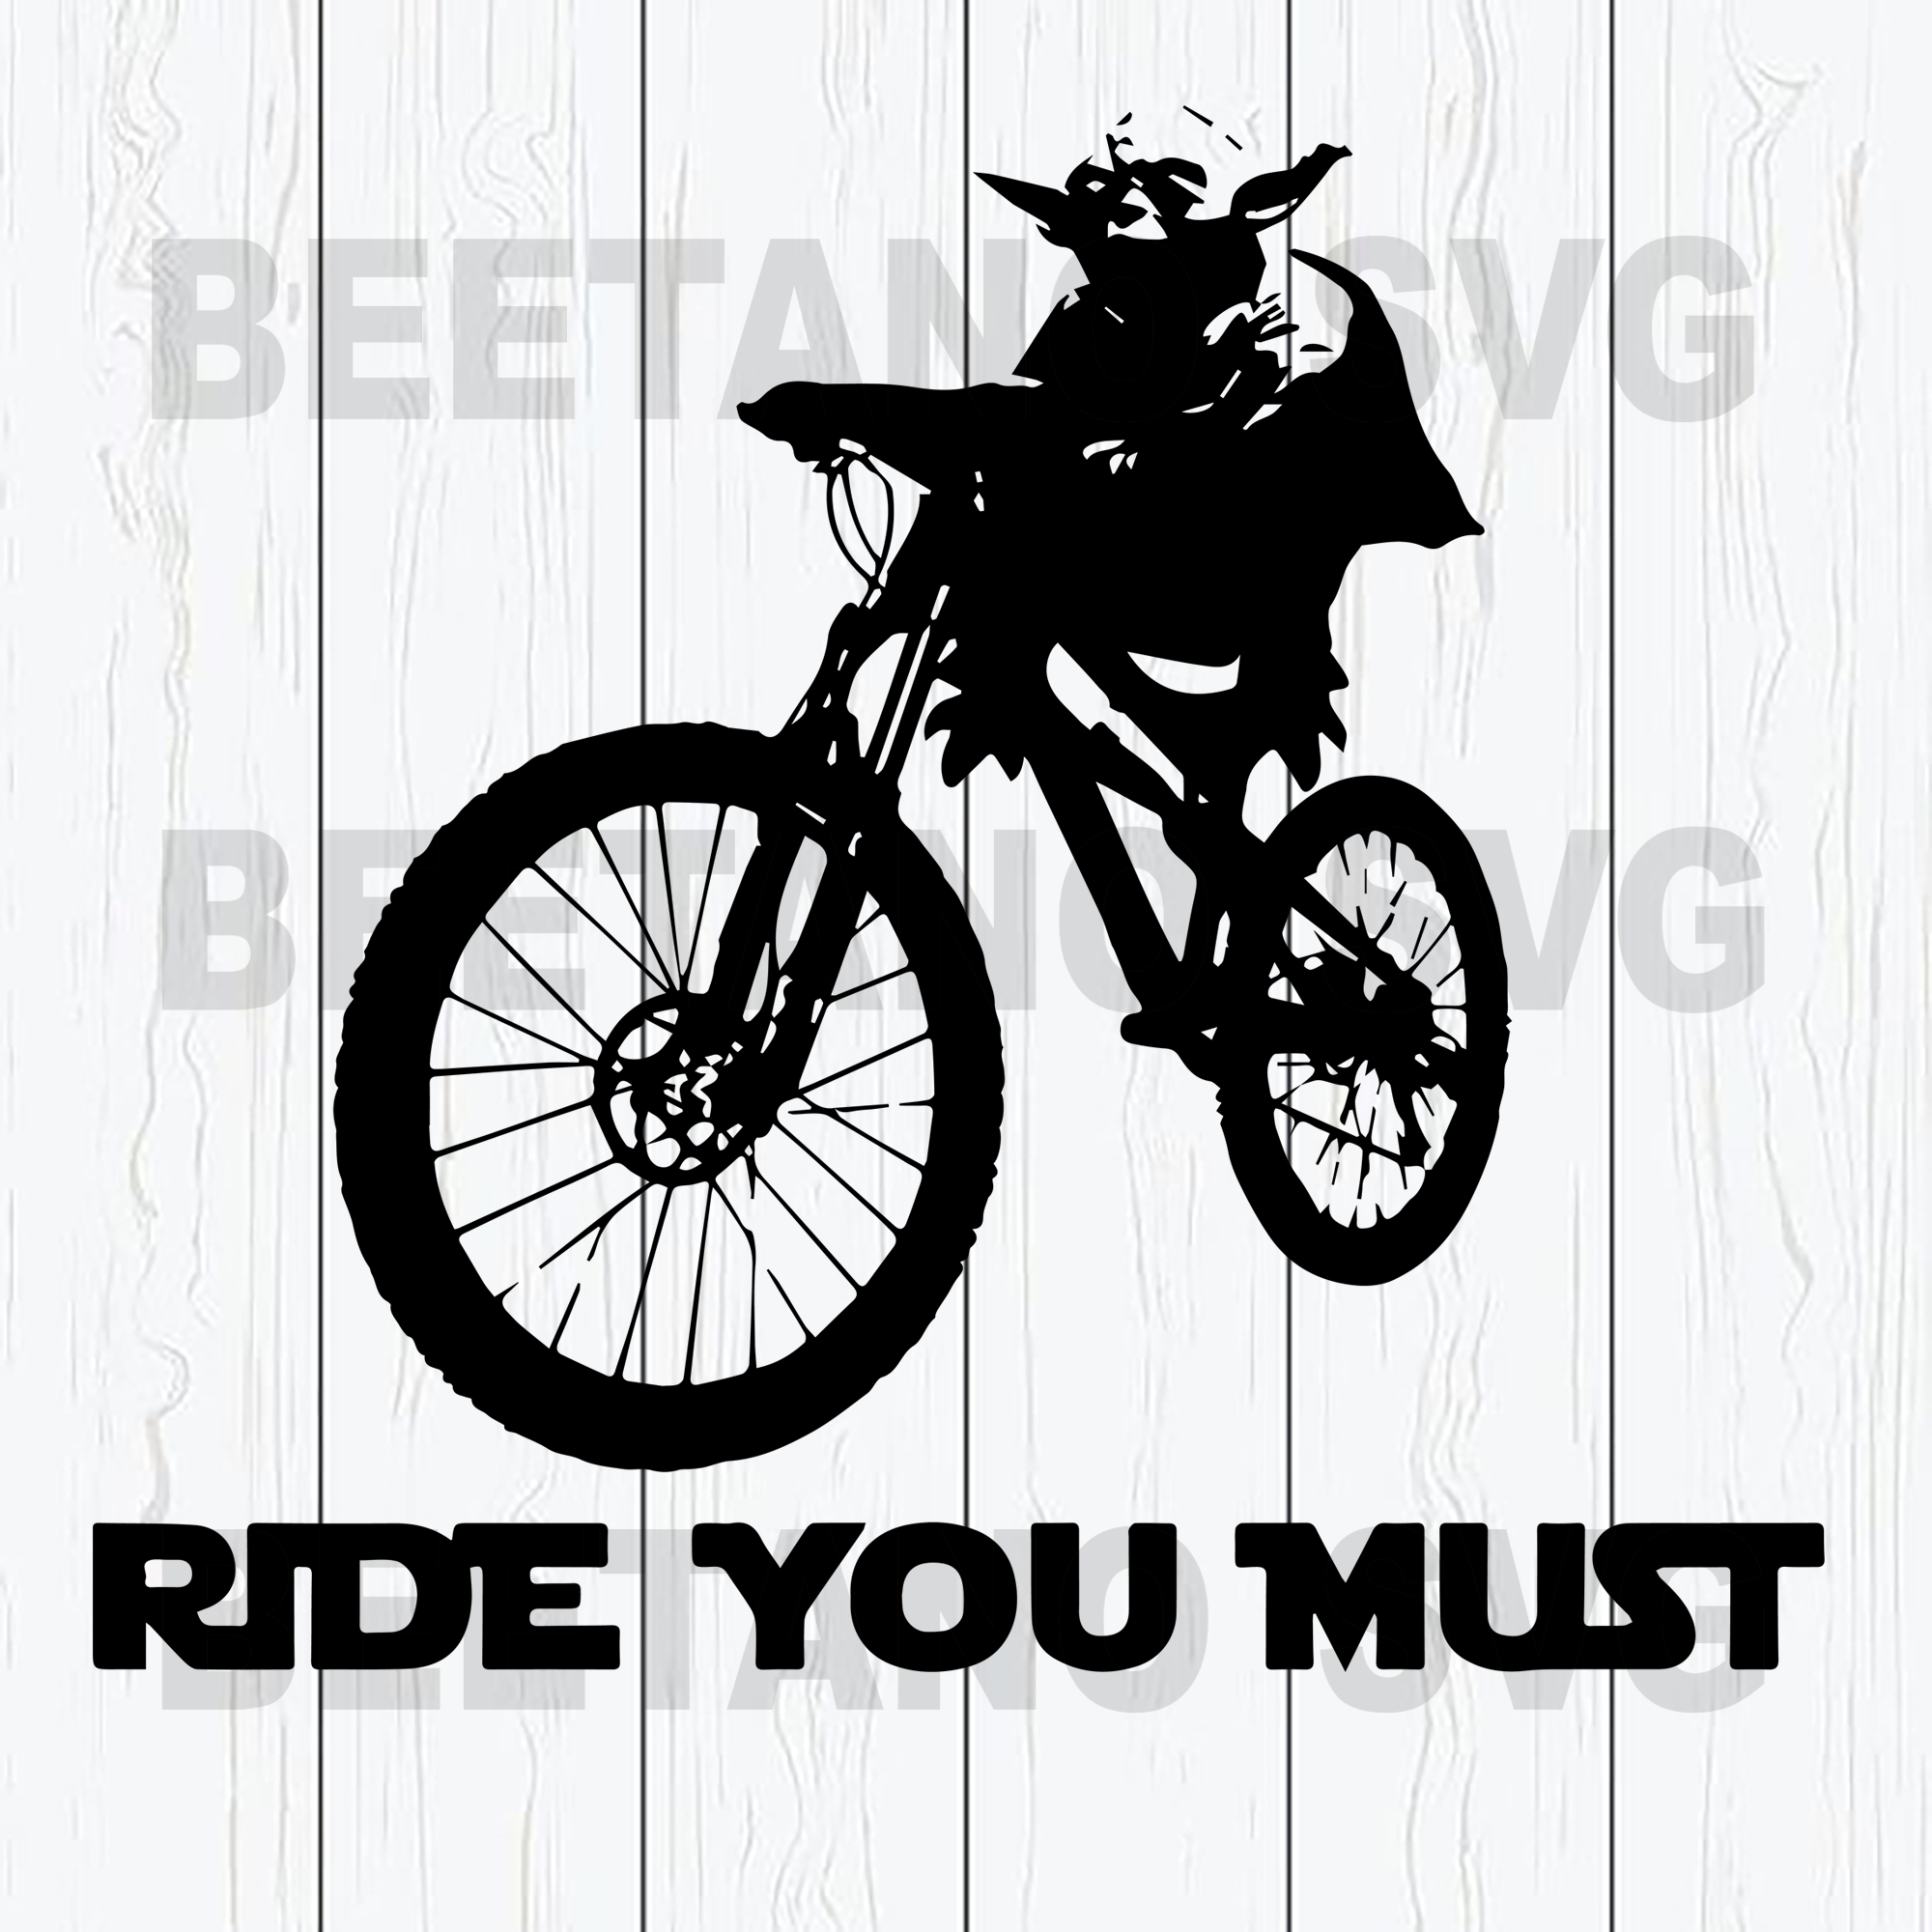 Star wars funny bicycle Cutting Files For Cricut, SVG, DXF, EPS, PNG Instant Download